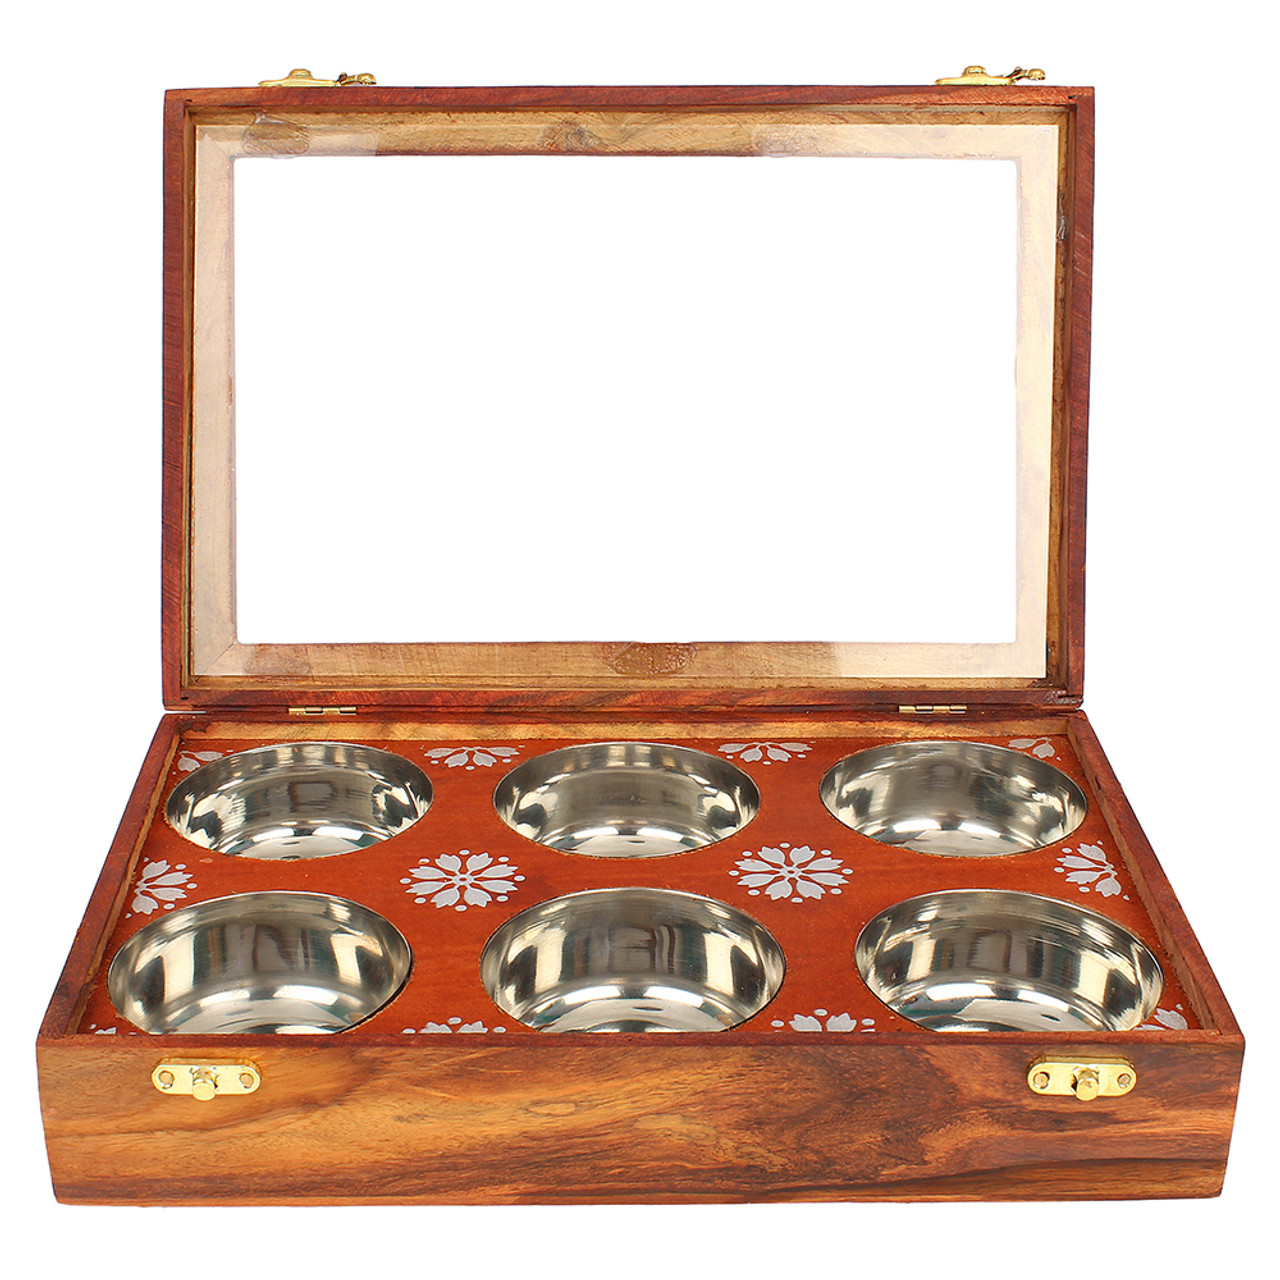 """12""""x8""""x3"""" Handmade Wooden Box with 6 Storage Bowls and Floral Brass Inlay - Image 3"""